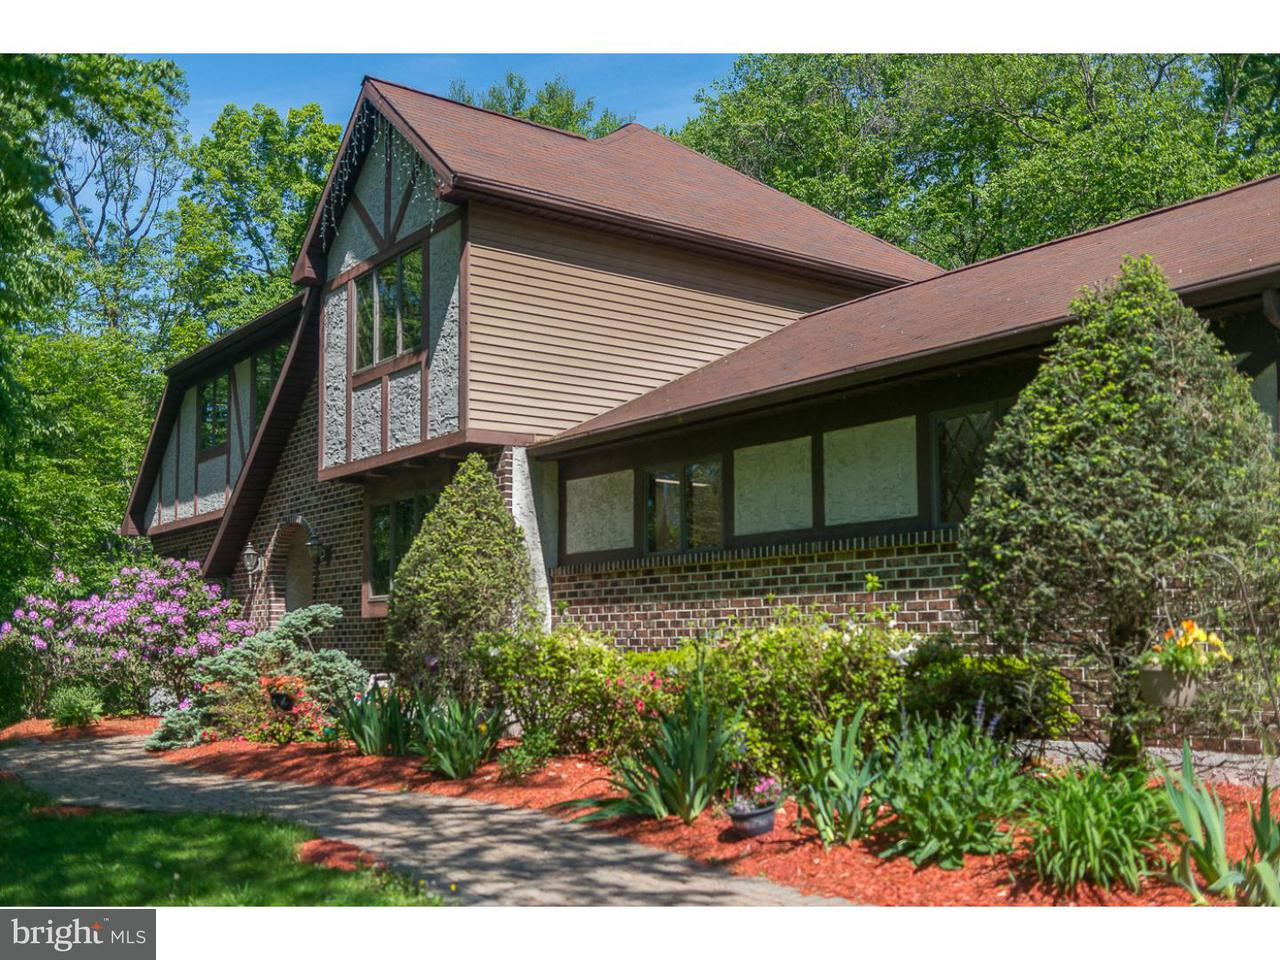 Single Family Home for Rent at 35 HIGHLAND VIEW Court Easton, Pennsylvania 18042 United States